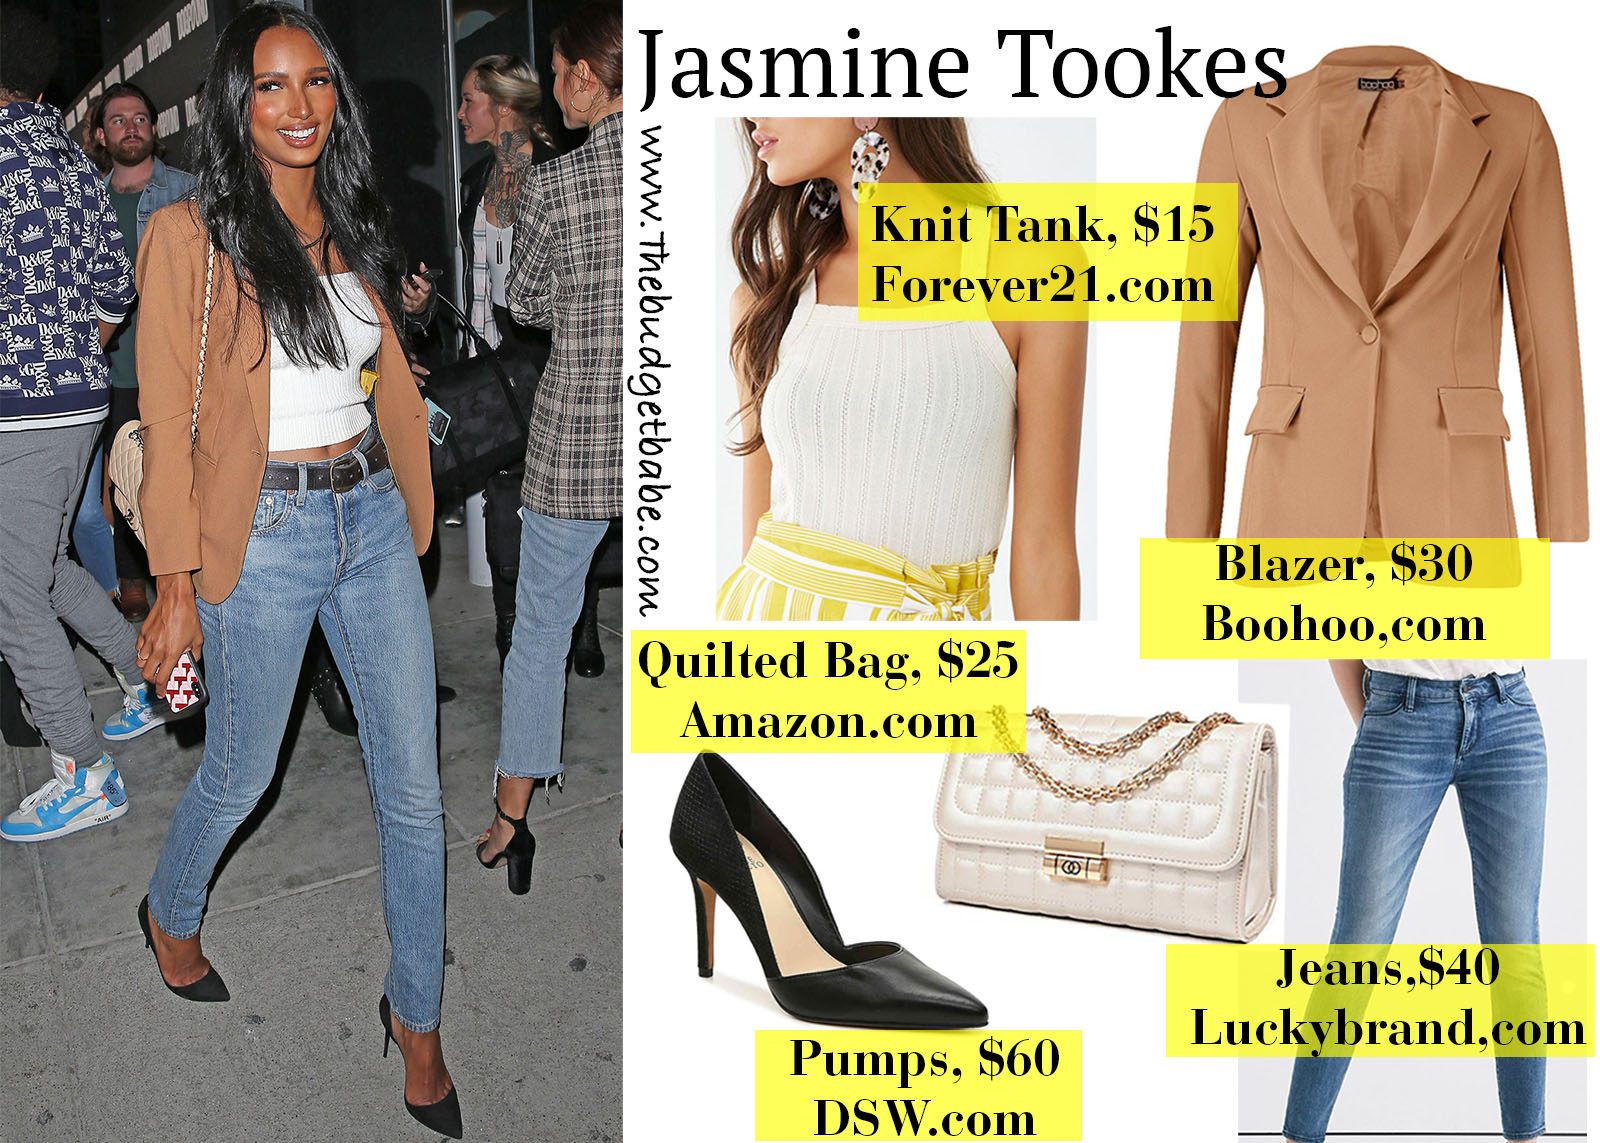 Jasmine Tookes Camel Blazer and Jeans Look for Less